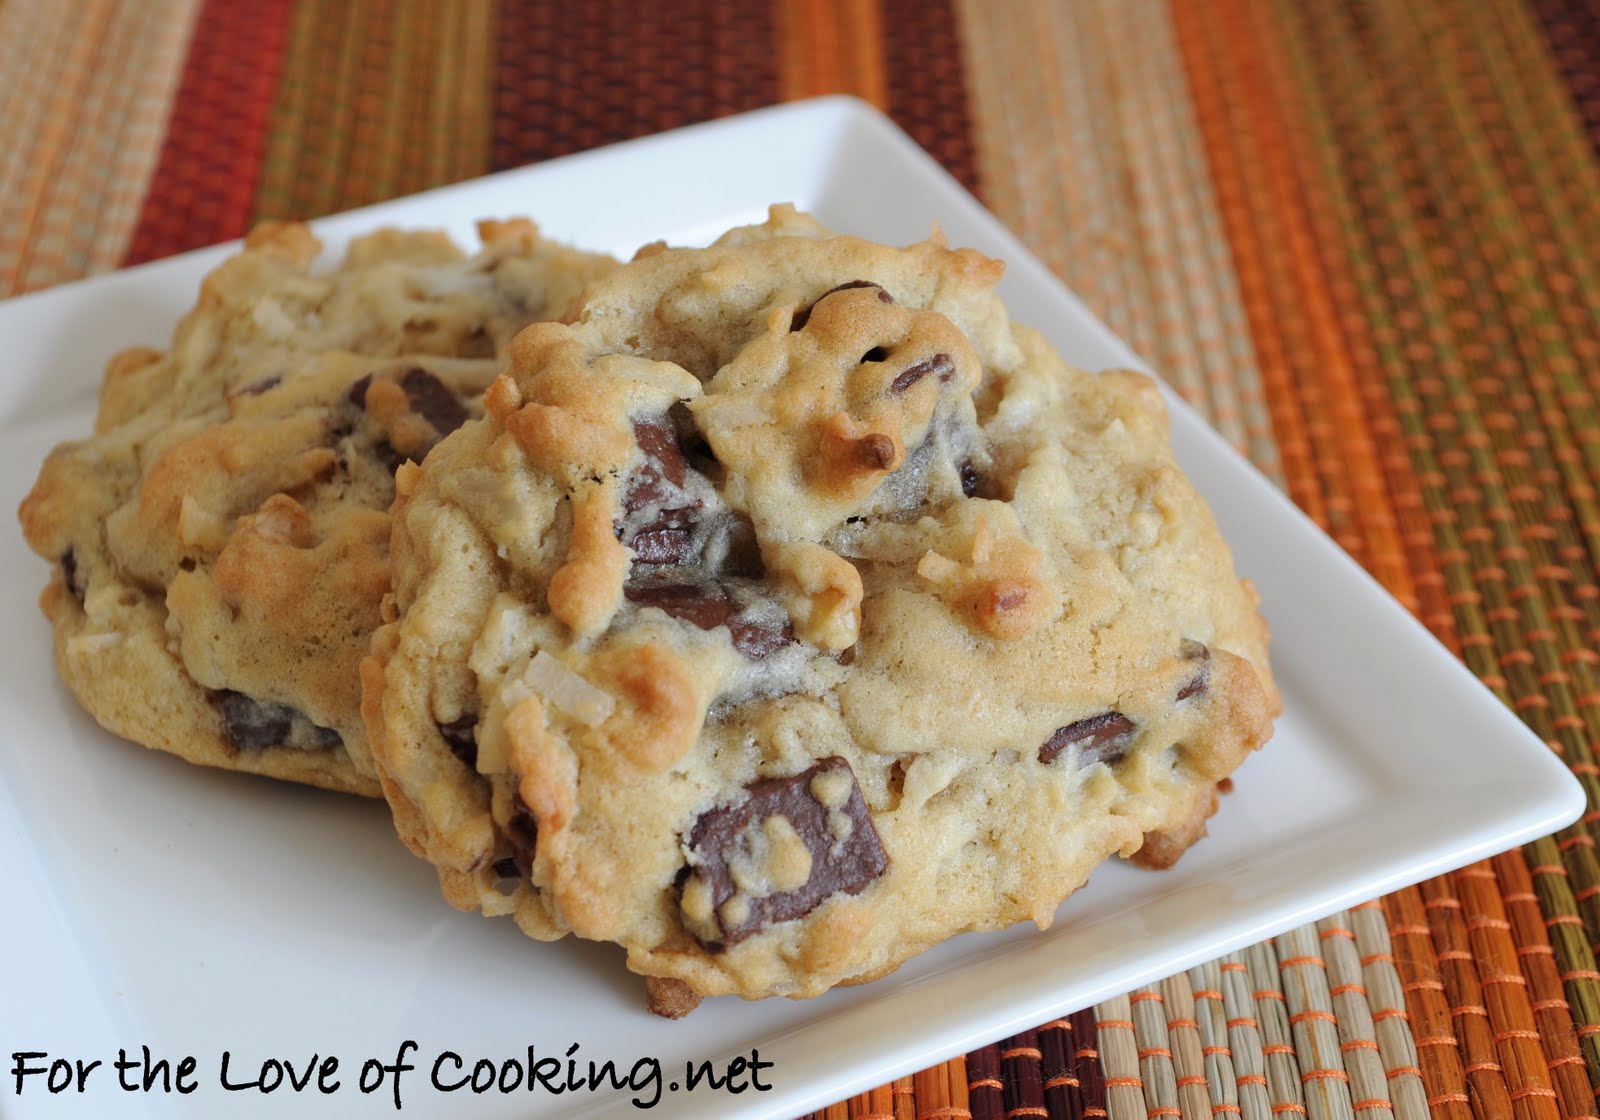 ... cooking, cleaning tips: Coconut, Chocolate Chunk, and Walnut Cookies